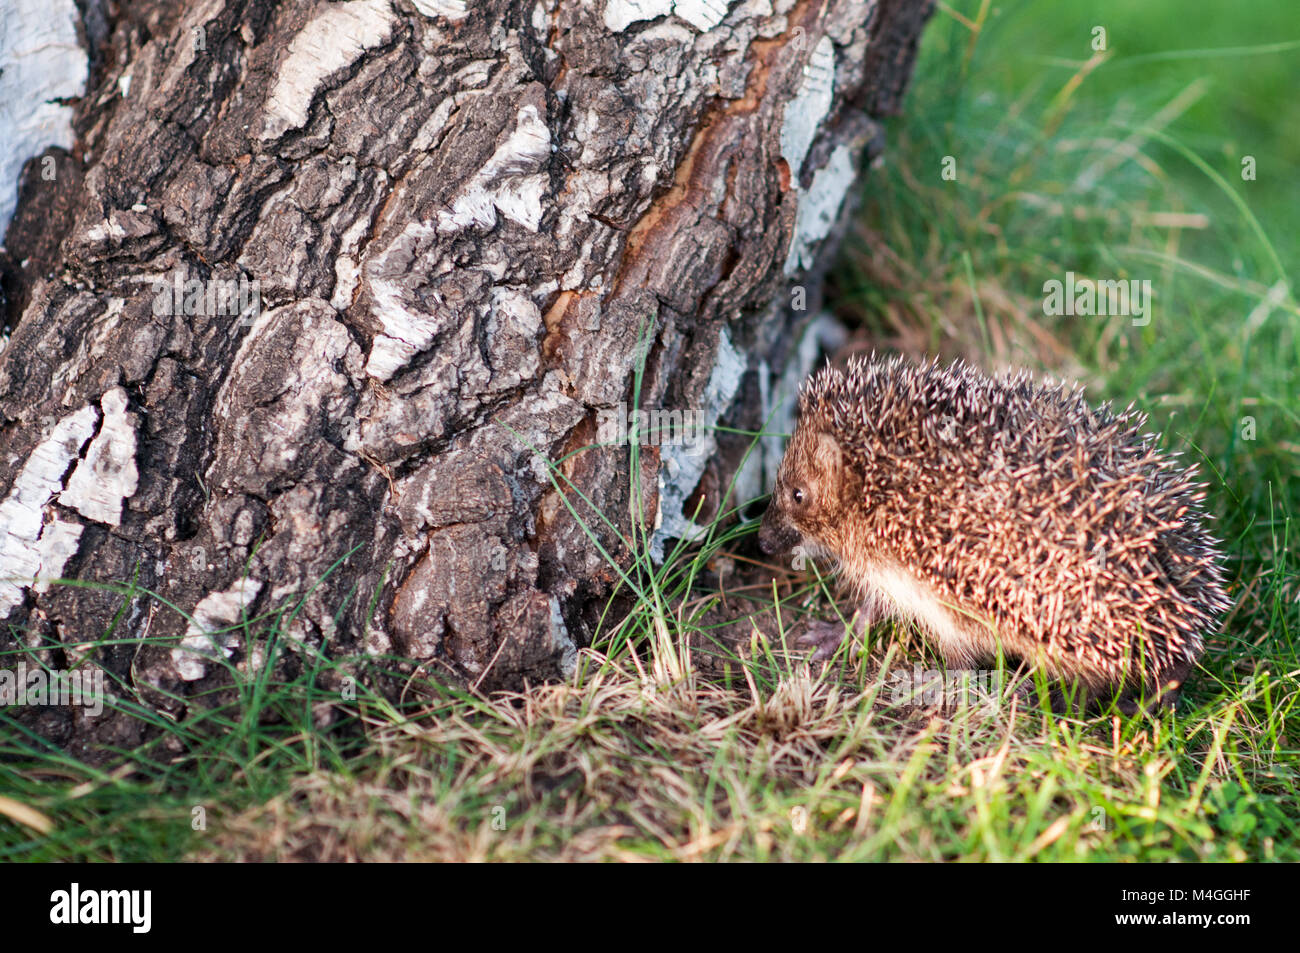 Small hedgehog near the birch log in the grass - Stock Image